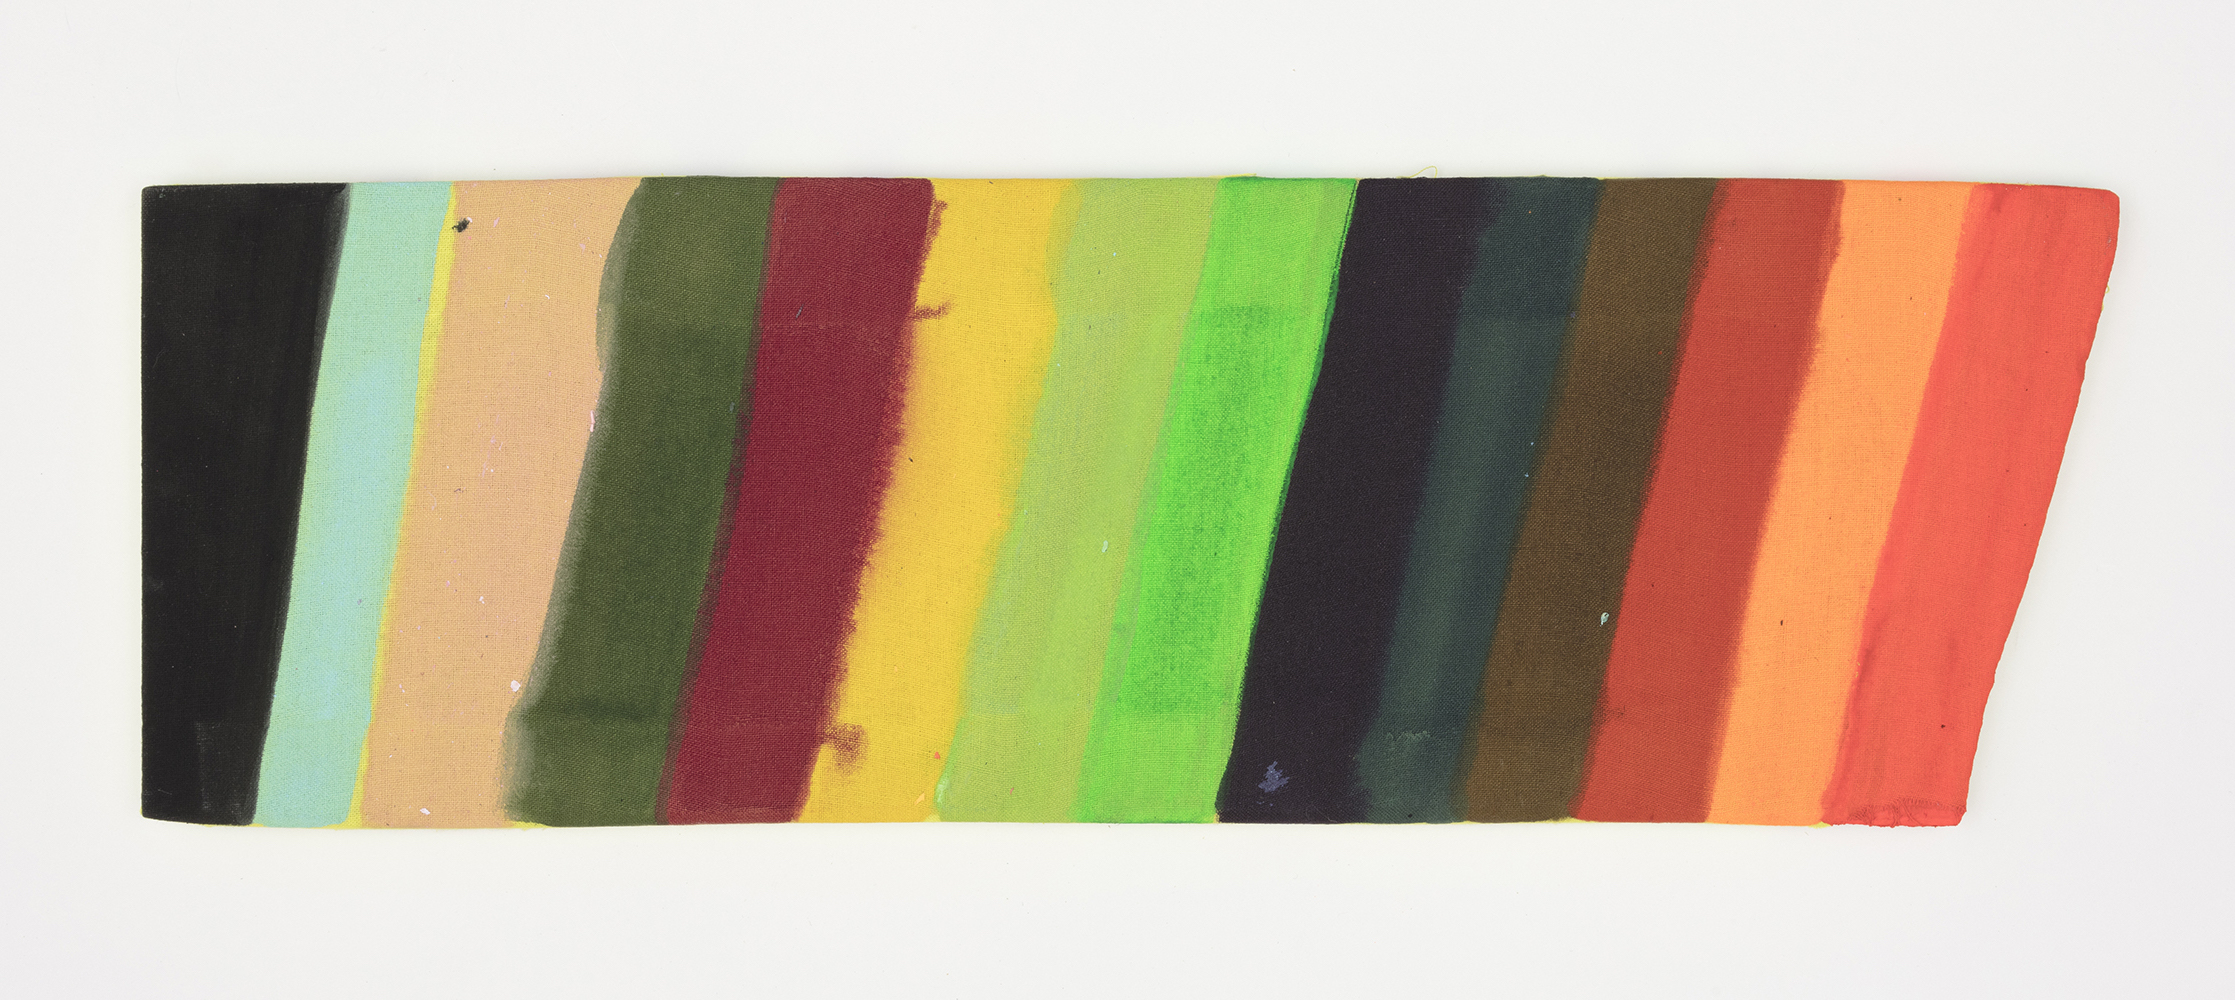 Kevin McNamee-Tweed.<em> Untitled</em>, 2019. Acrylic and colored pencil on muslin, 5 3/4 x 17 inches (14.6 x 43.2 cm)